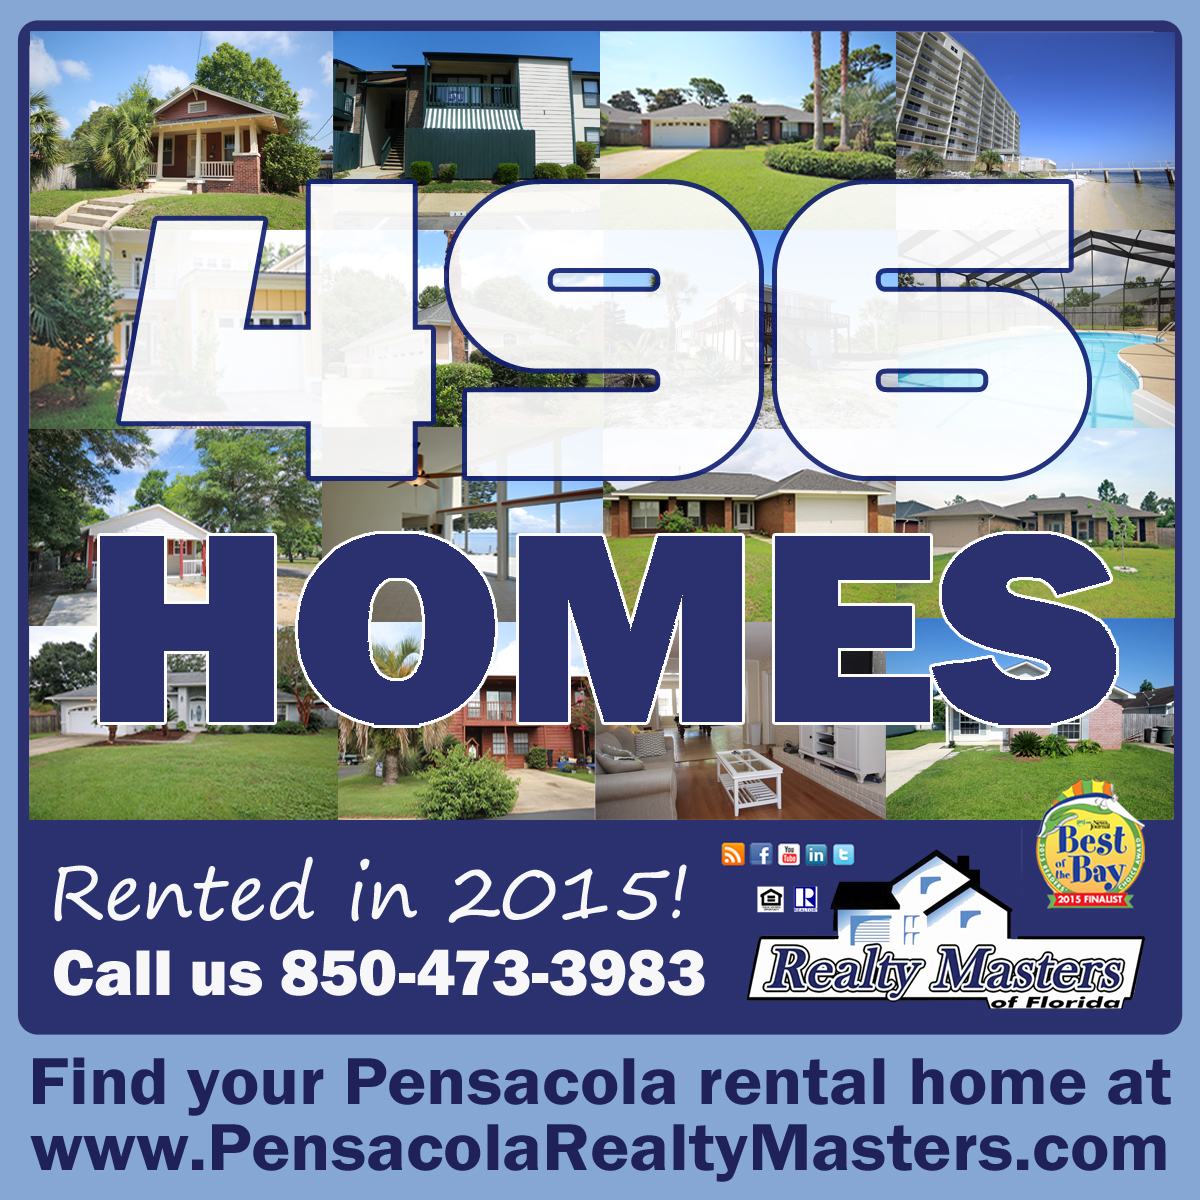 Rental Properties In My Area: Love To Live In Pensacola, Florida